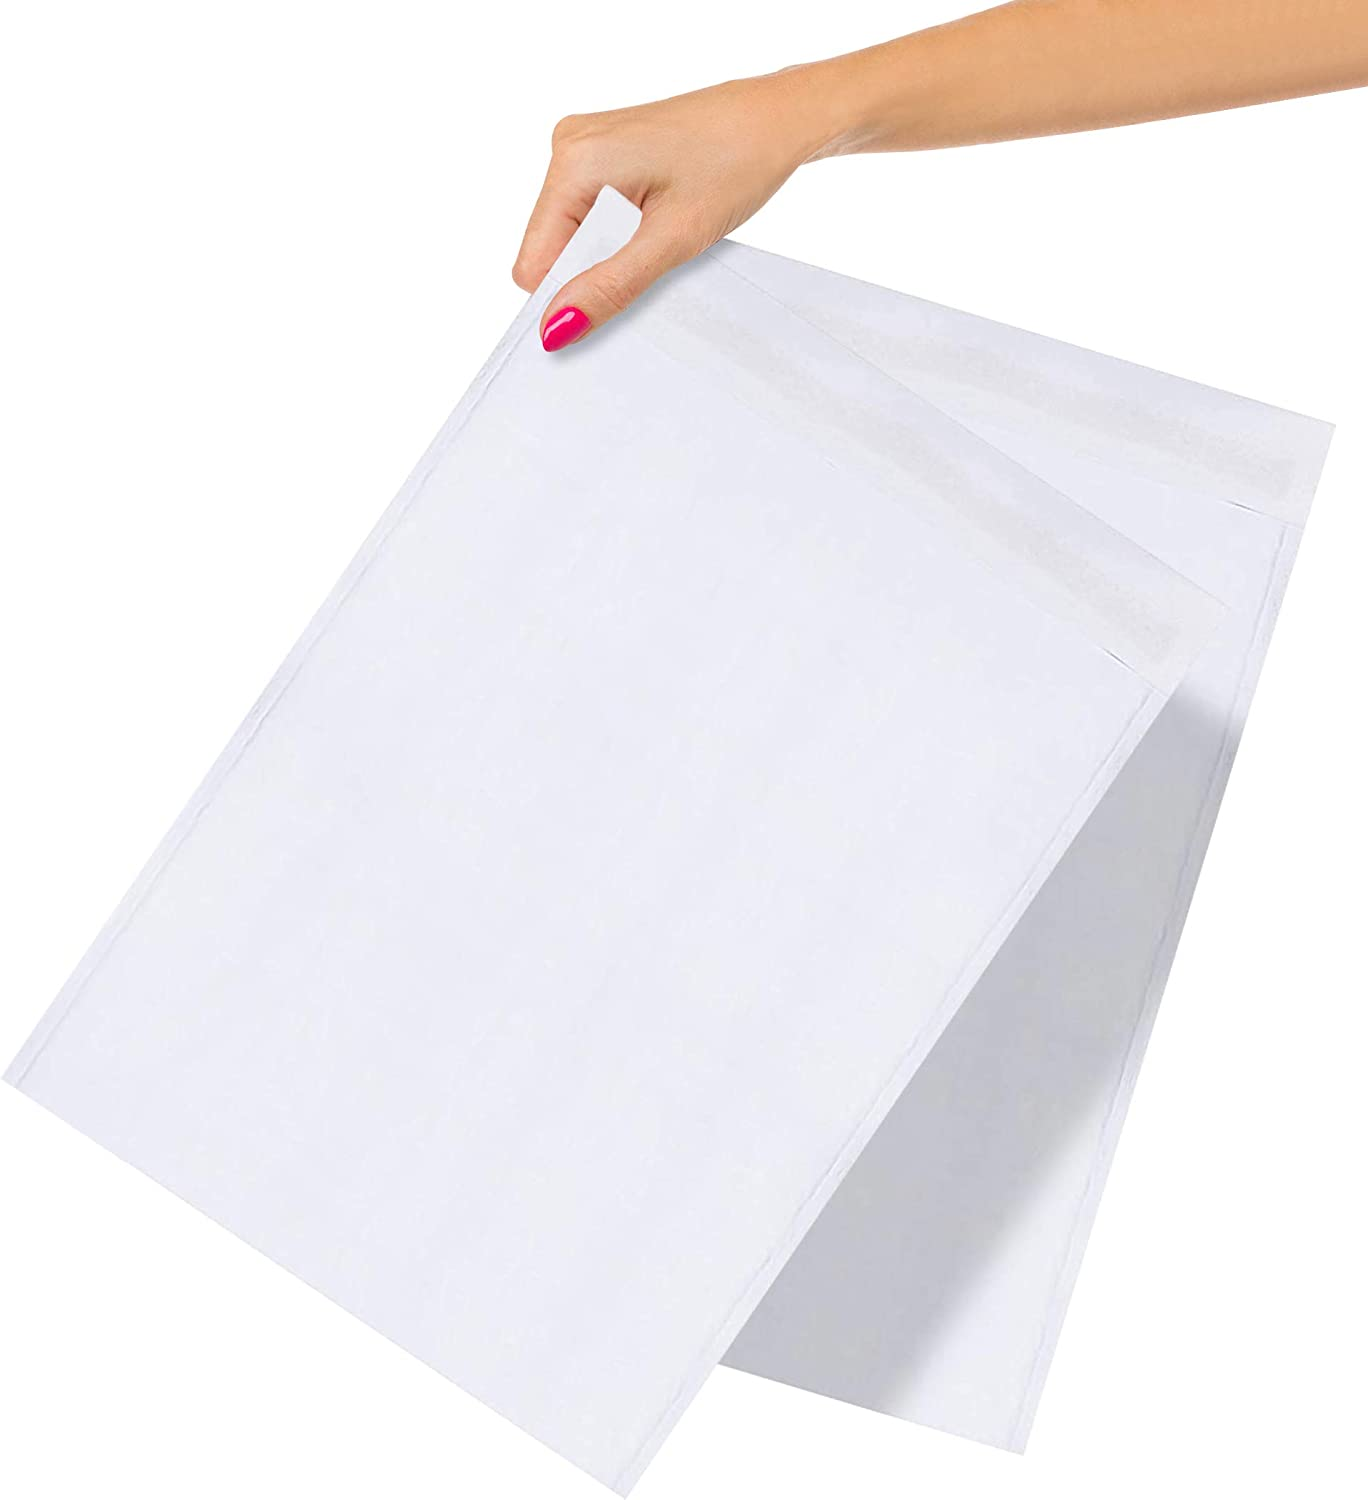 ABC Pack of Sale special price 25 White Kraft Padded Envelopes New Free Shipping 10.5 15 x Bubble Mai